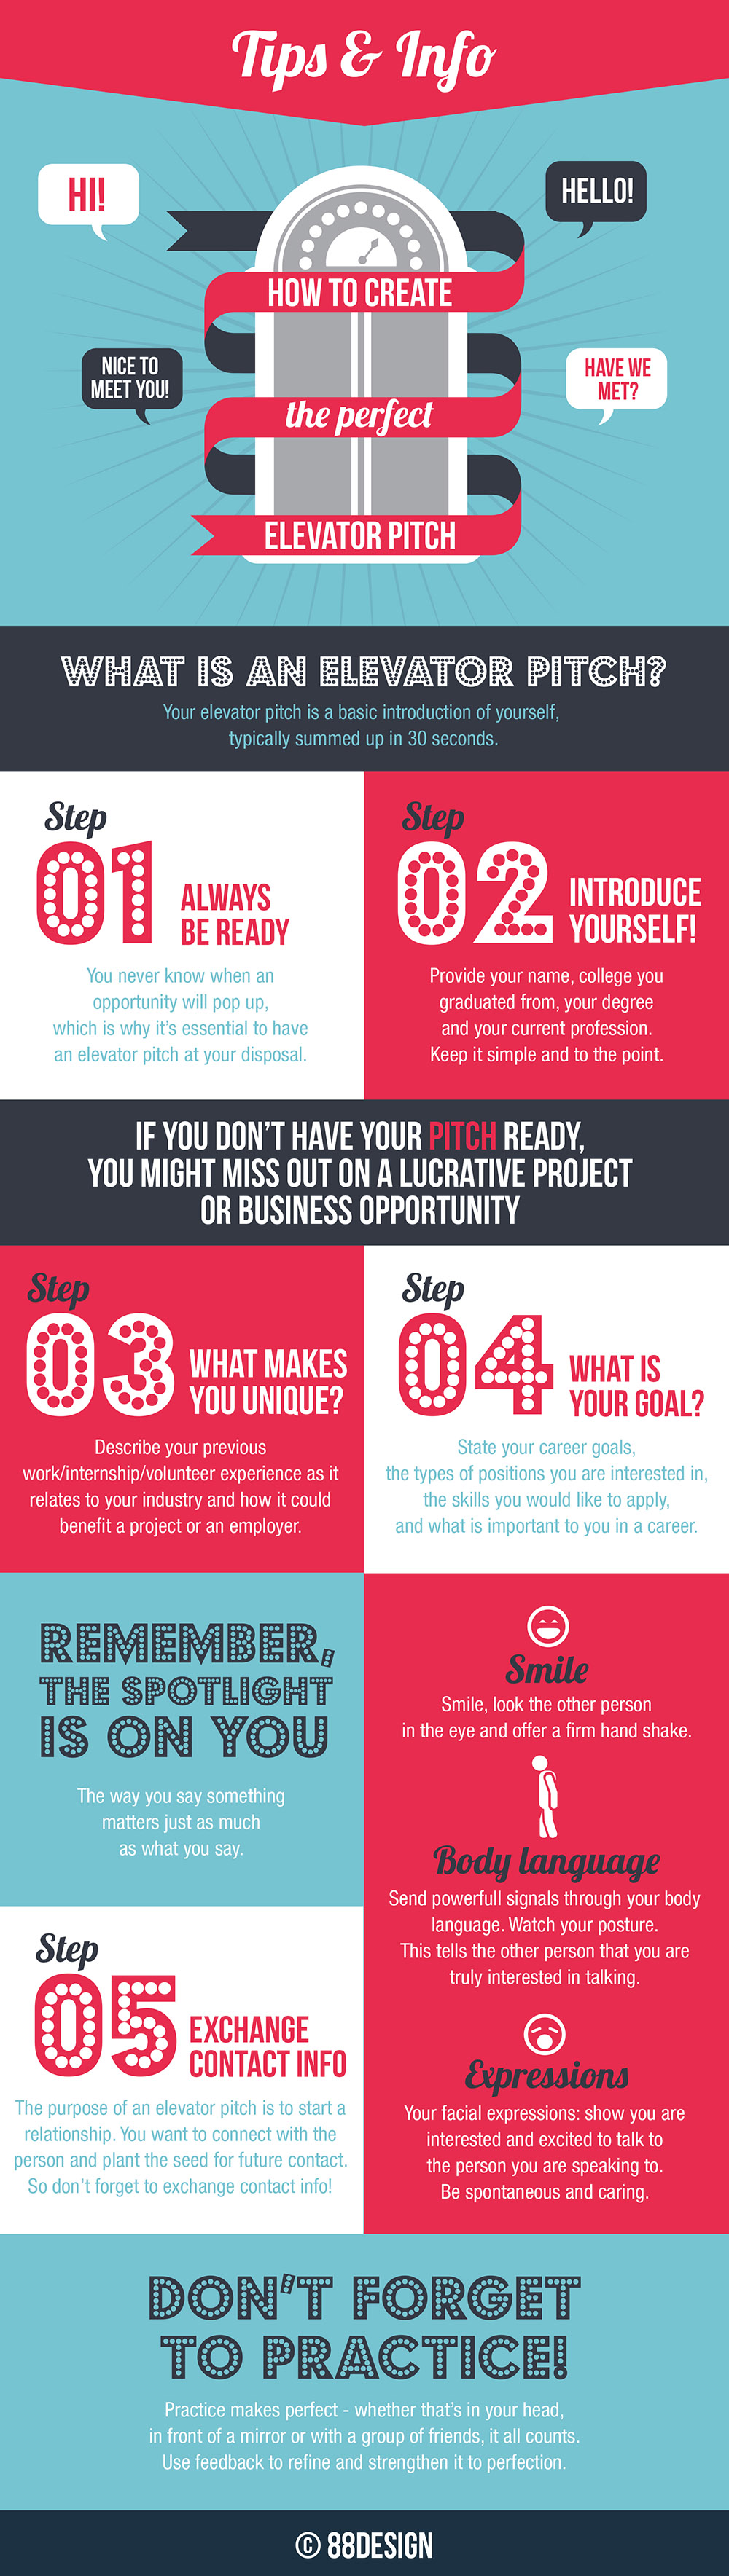 elevator pitch infographic cerca amb google elevator pitch elevator pitch infographic cerca amb google